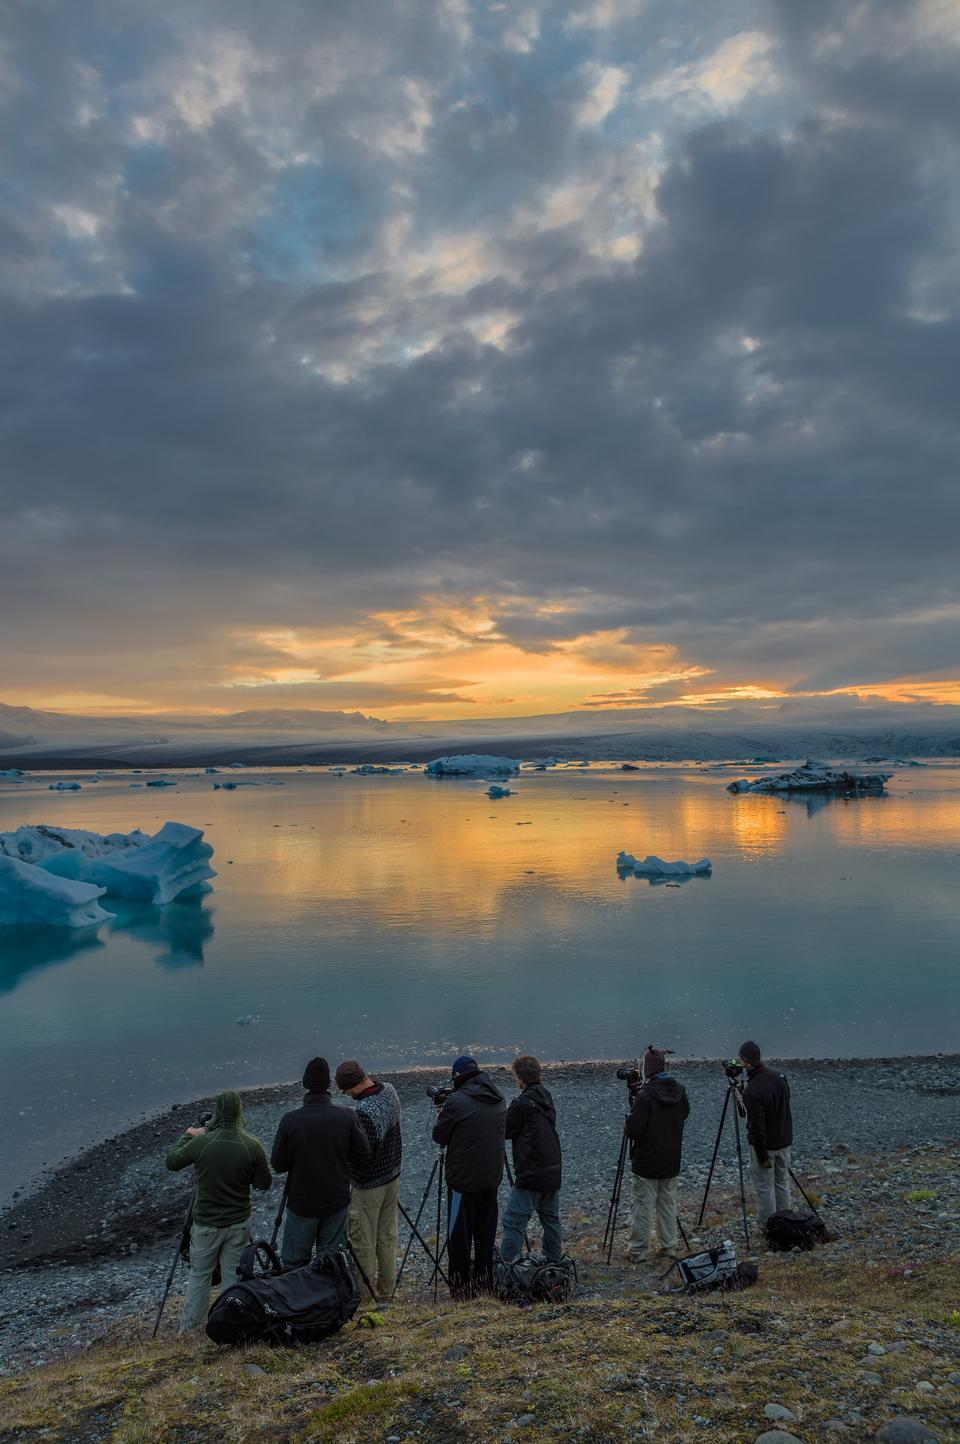 Free Photos: The sun sets over the famous glacier lagoon | bluelagoon